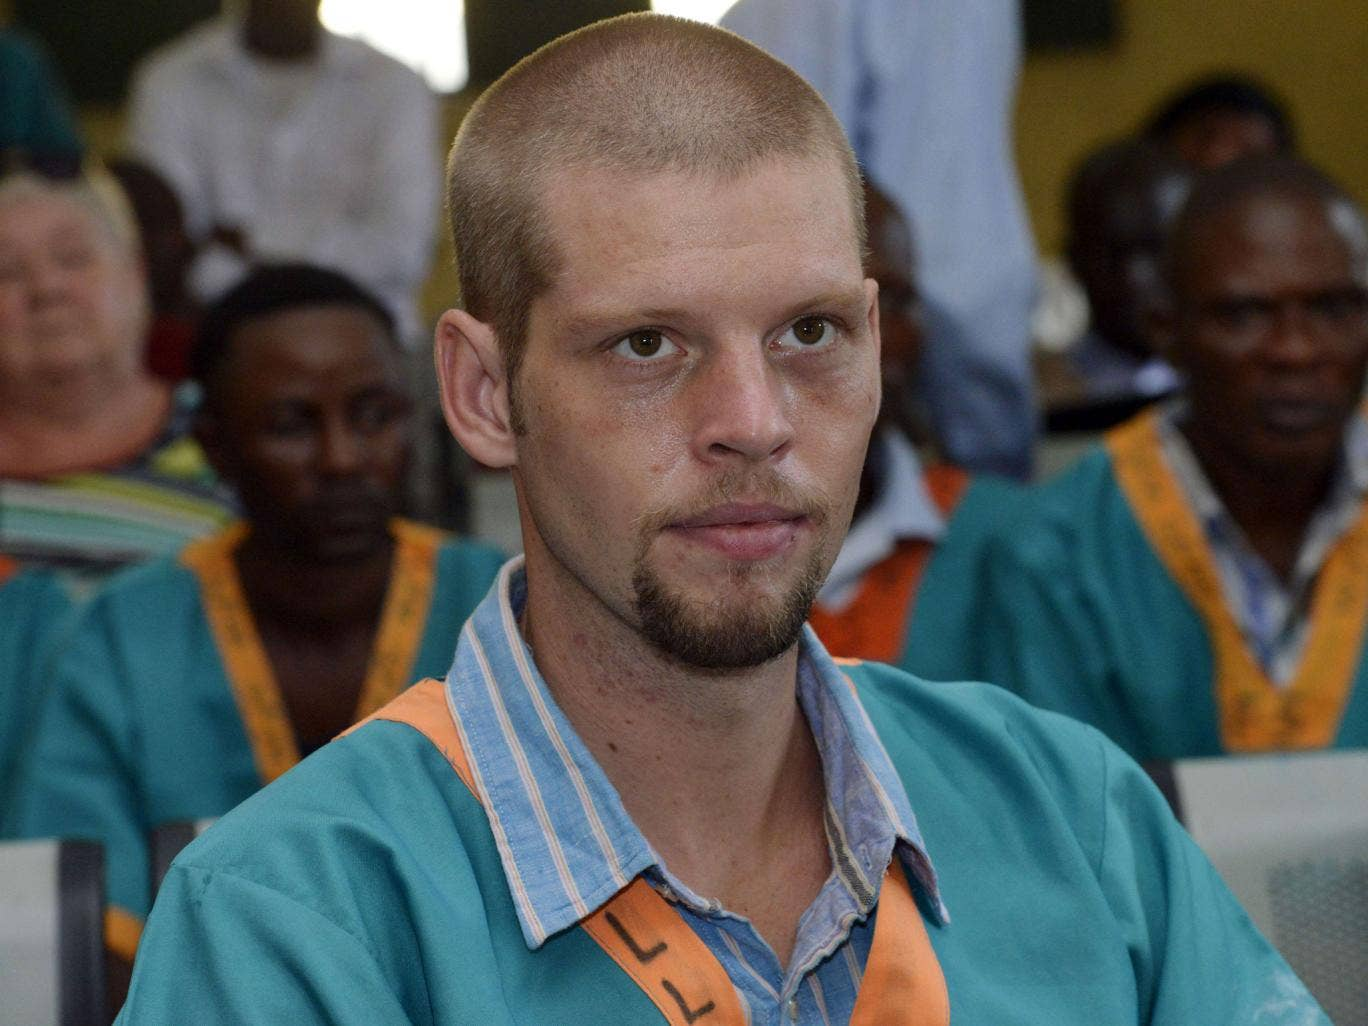 Joshua French has been given a life sentence for murdering his friend and cellmate Tjostolv Moland, who was found dead in prison on 18 August 2013